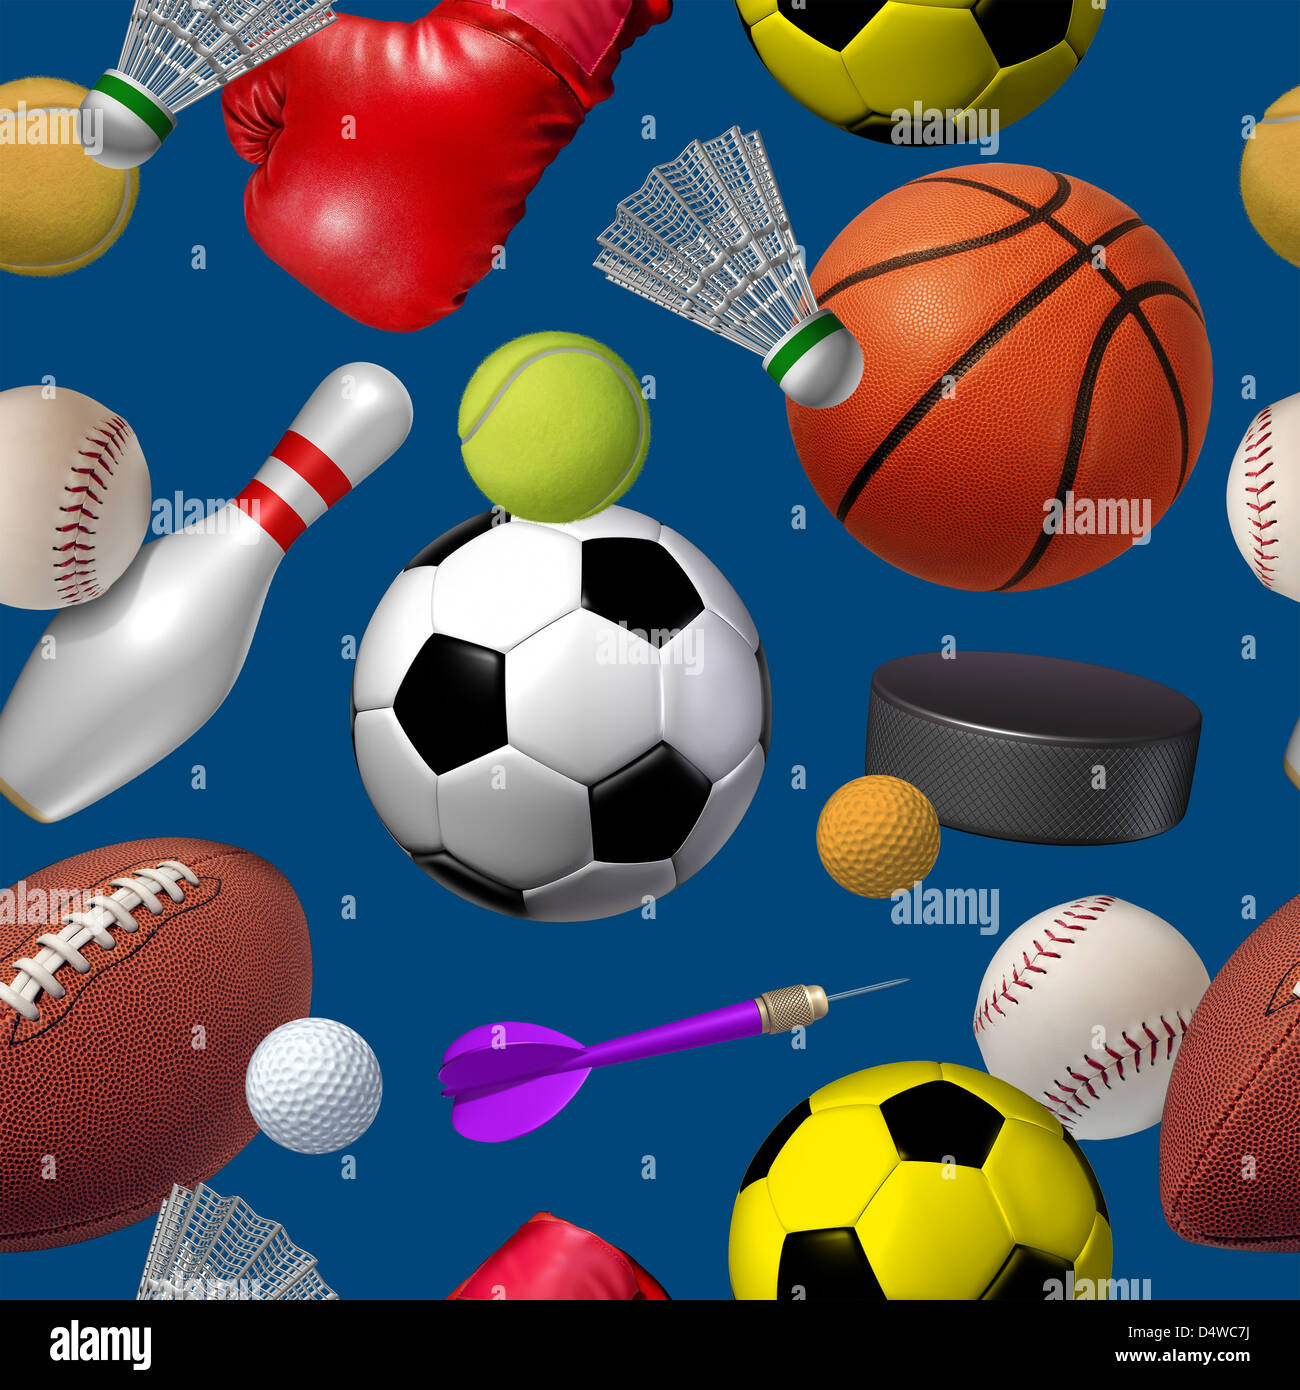 Wonderful Wallpaper Football Baseball - sports-seamless-pattern-with-a-dark-blue-background-as-a-repeat-repetition-D4WC7J  Best Photo Reference_727148 .jpg